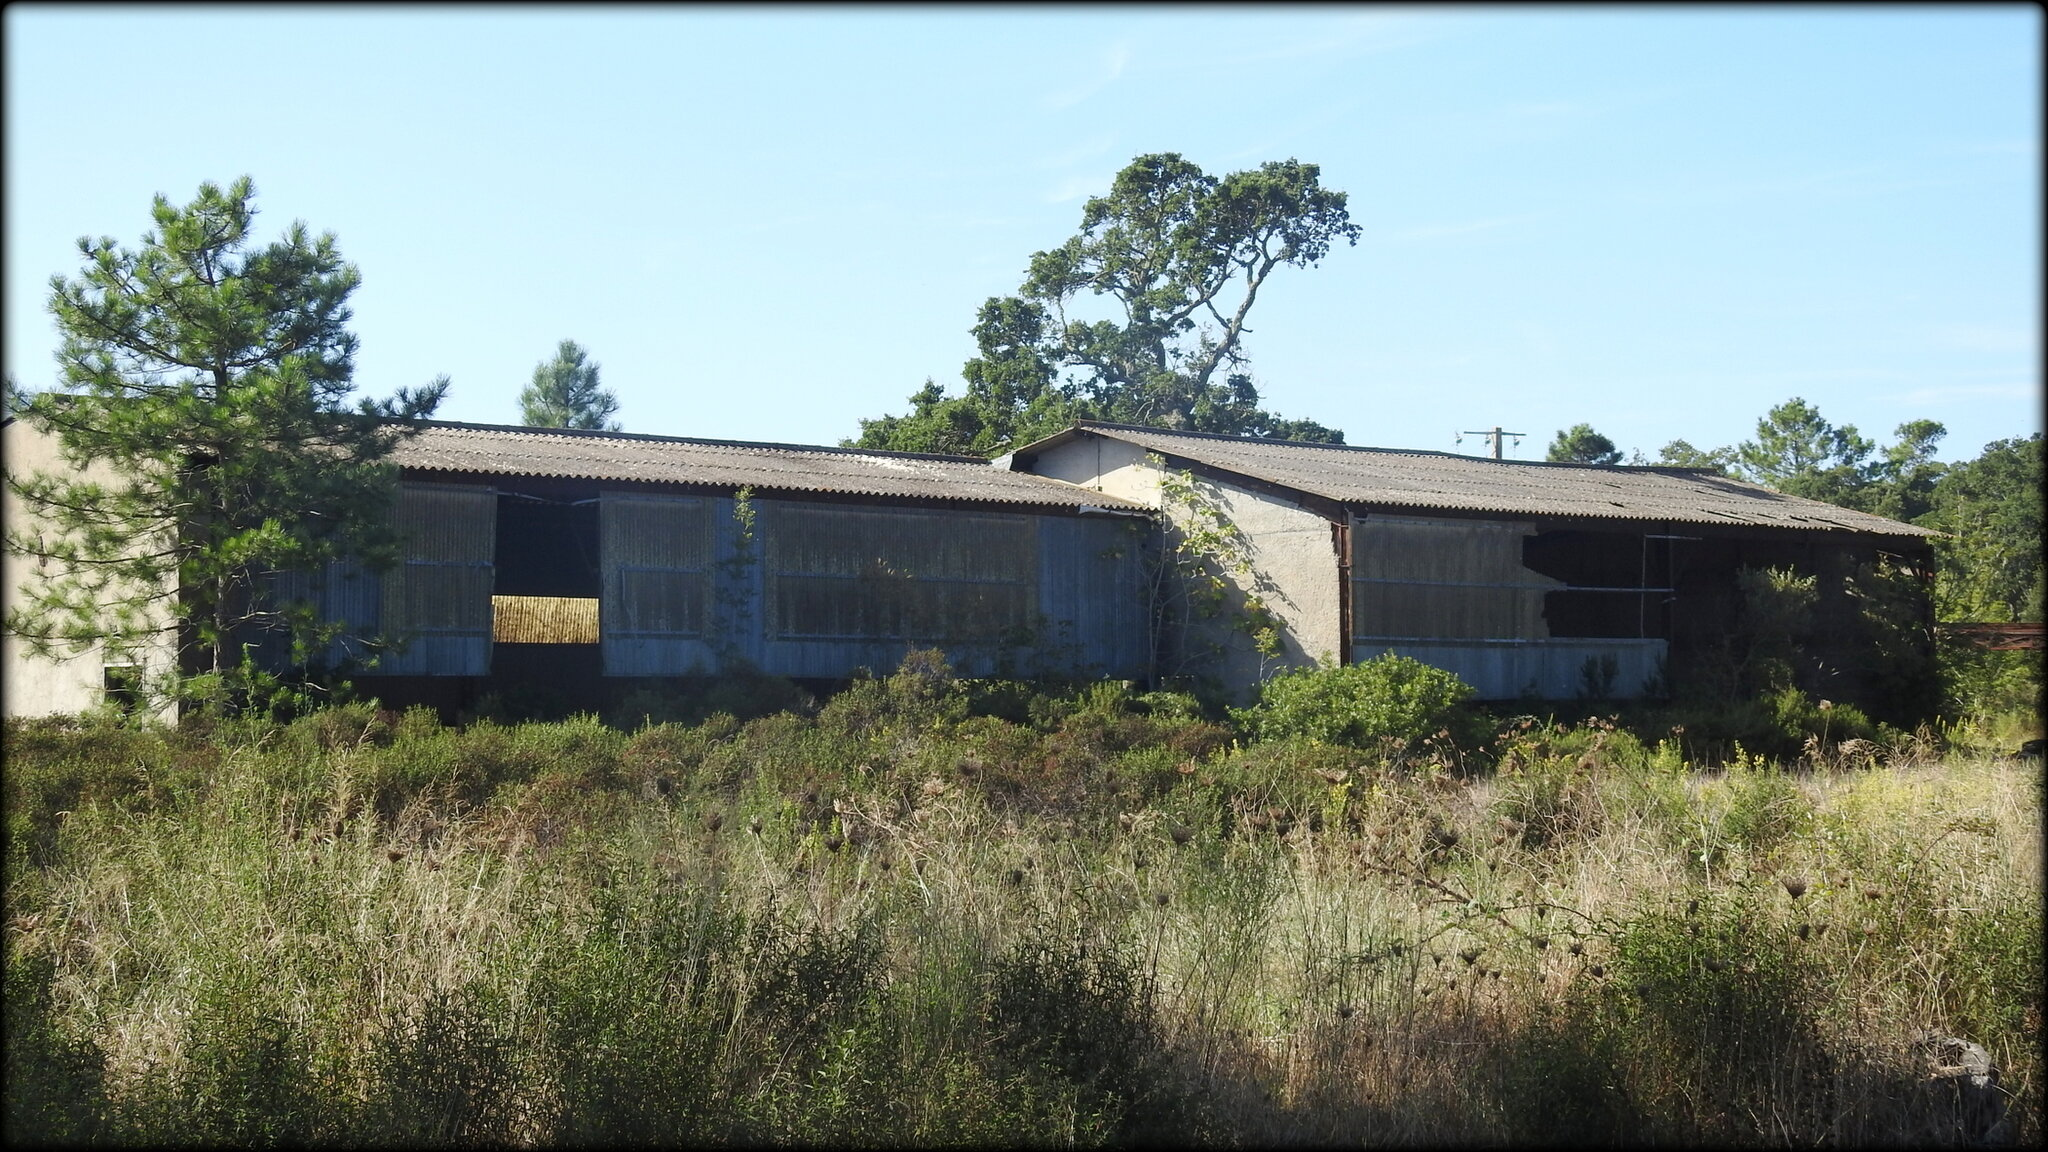 URBANISME_ANARCHIQUE__MENACE_